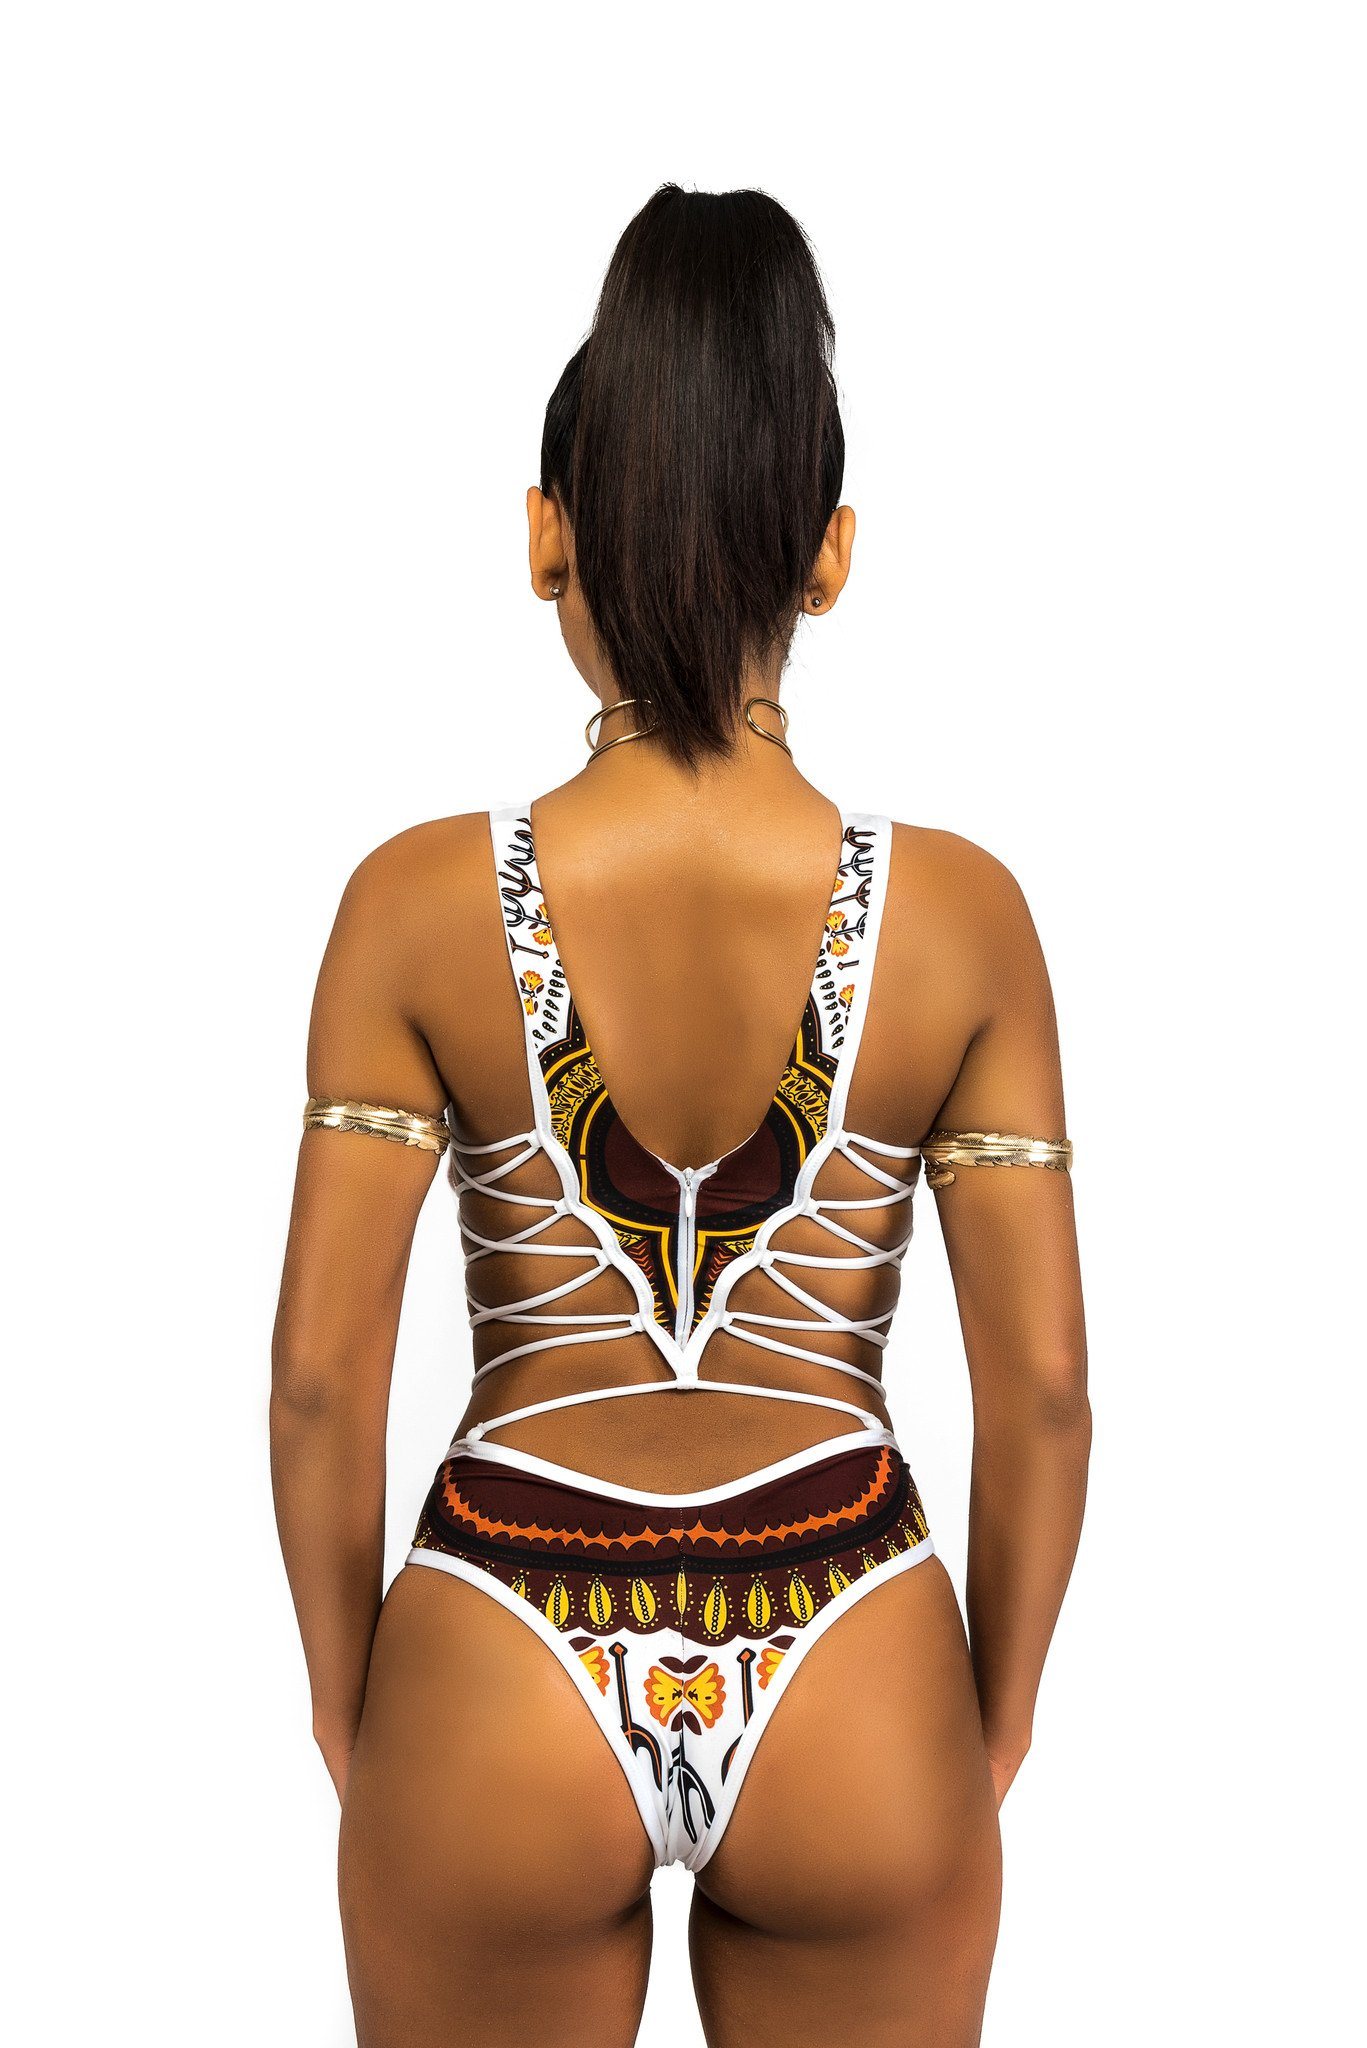 Sexy Bikini African Beauty Clubewear Swimsuit One Piece